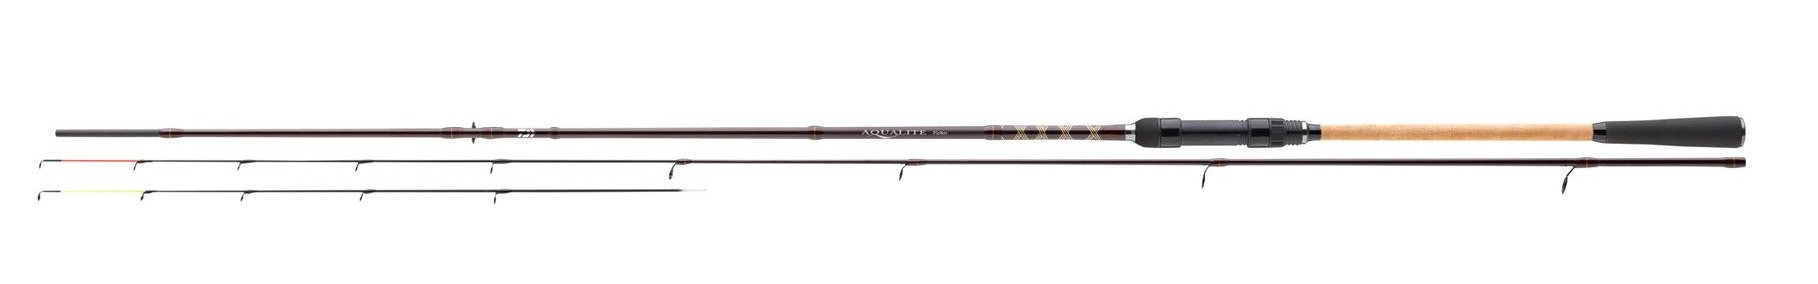 Daiwa Aqualite Picker  270cm -25g